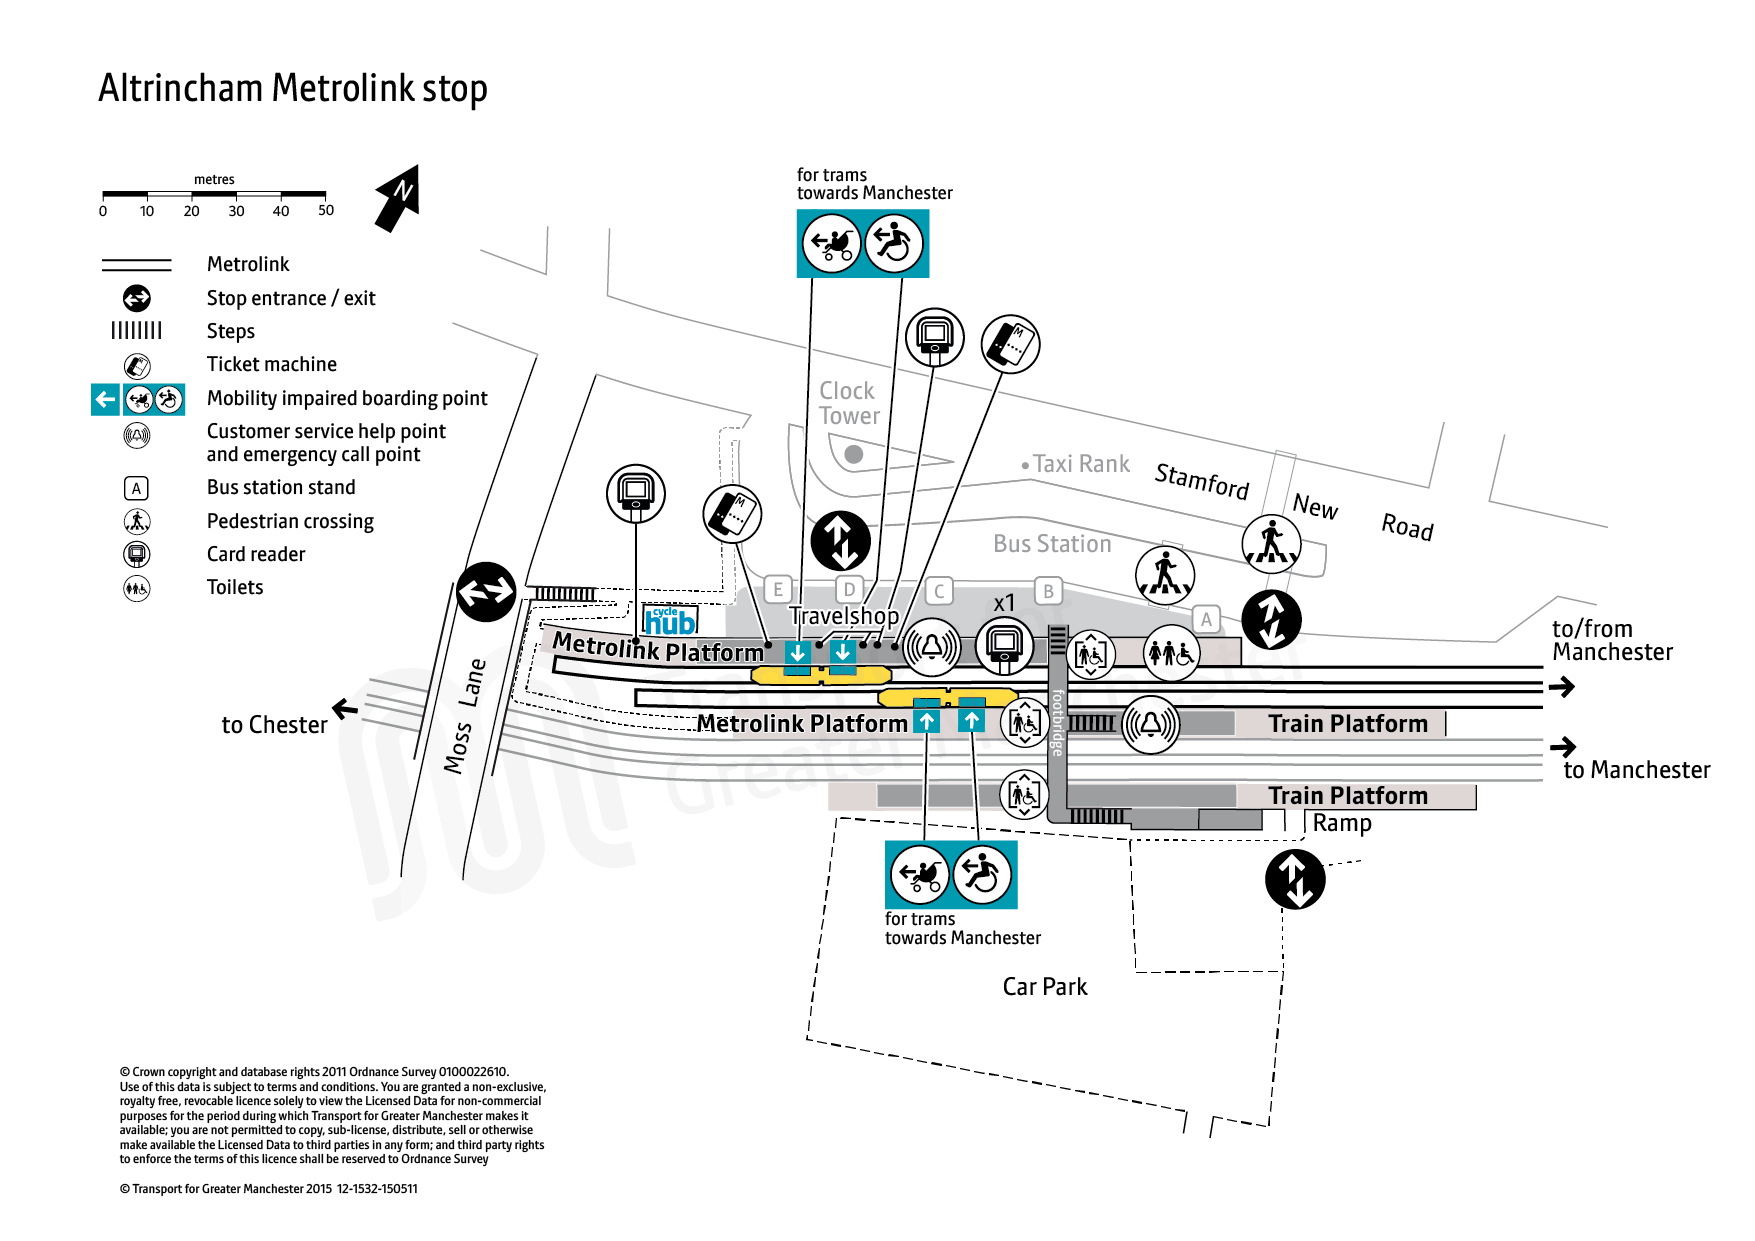 Stop map for Altrincham tram stop